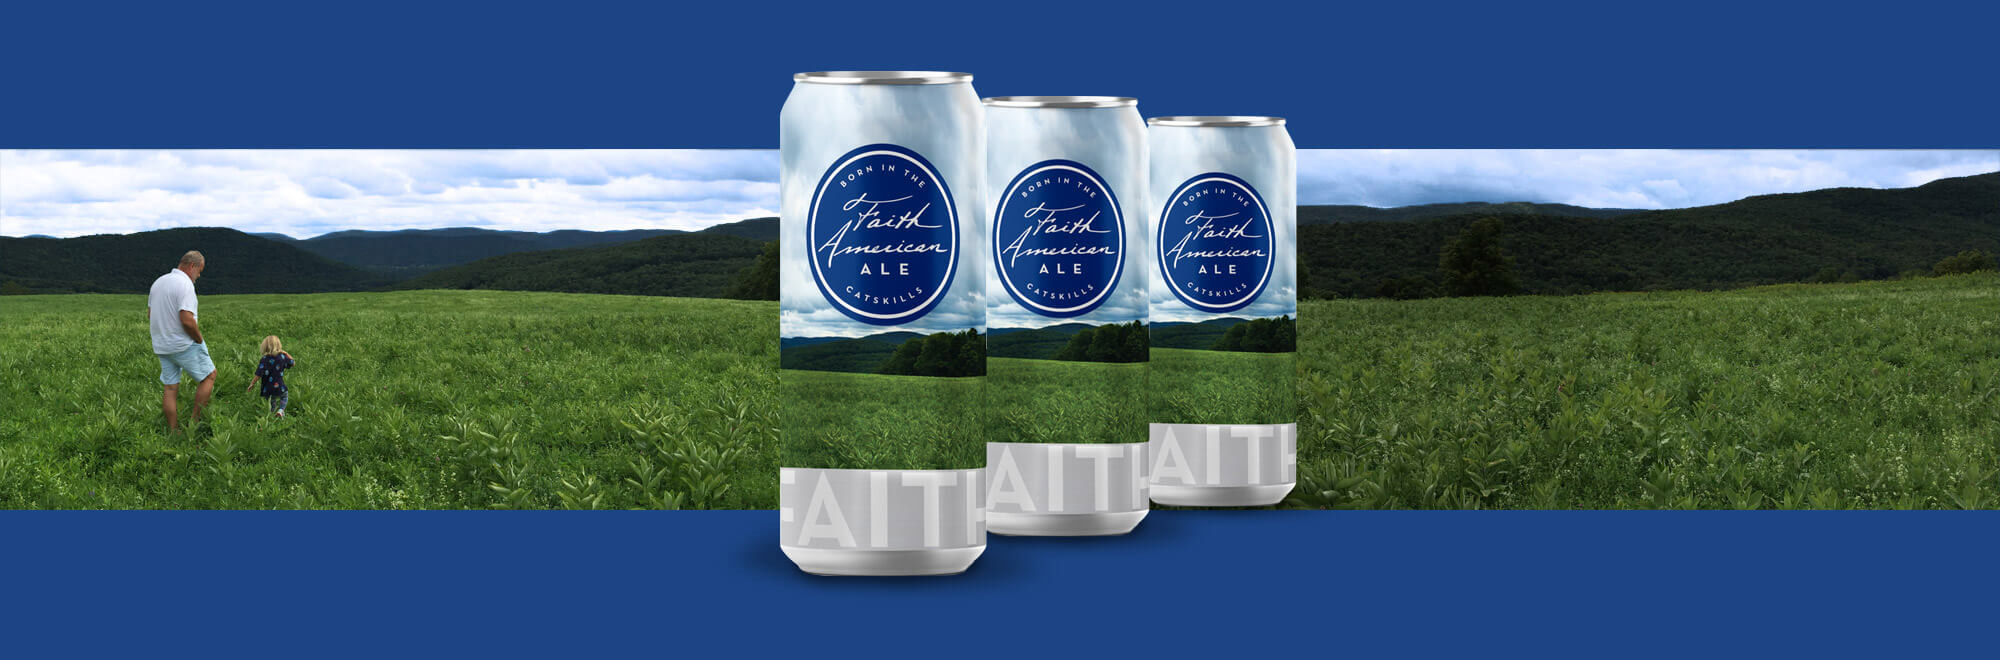 Kelsey Grammer and daughter in field with Faith American cans